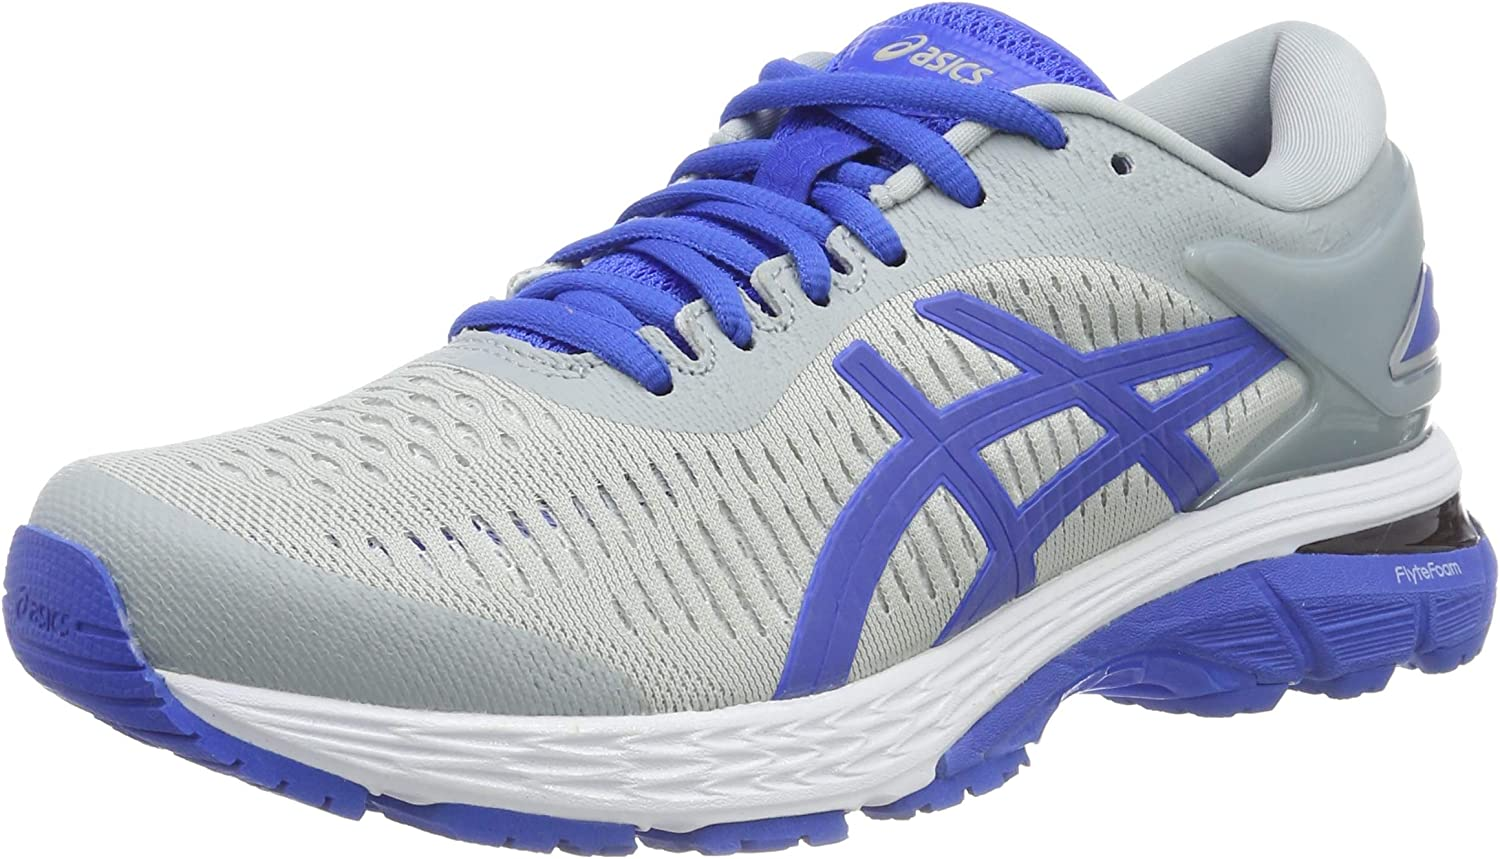 Asics Gel-Kayano 25 Lite-Show, Zapatillas de Running para Mujer, Gris (Mid Grey/Illusion Blue 020), 43.5 EU: Amazon.es: Zapatos y complementos